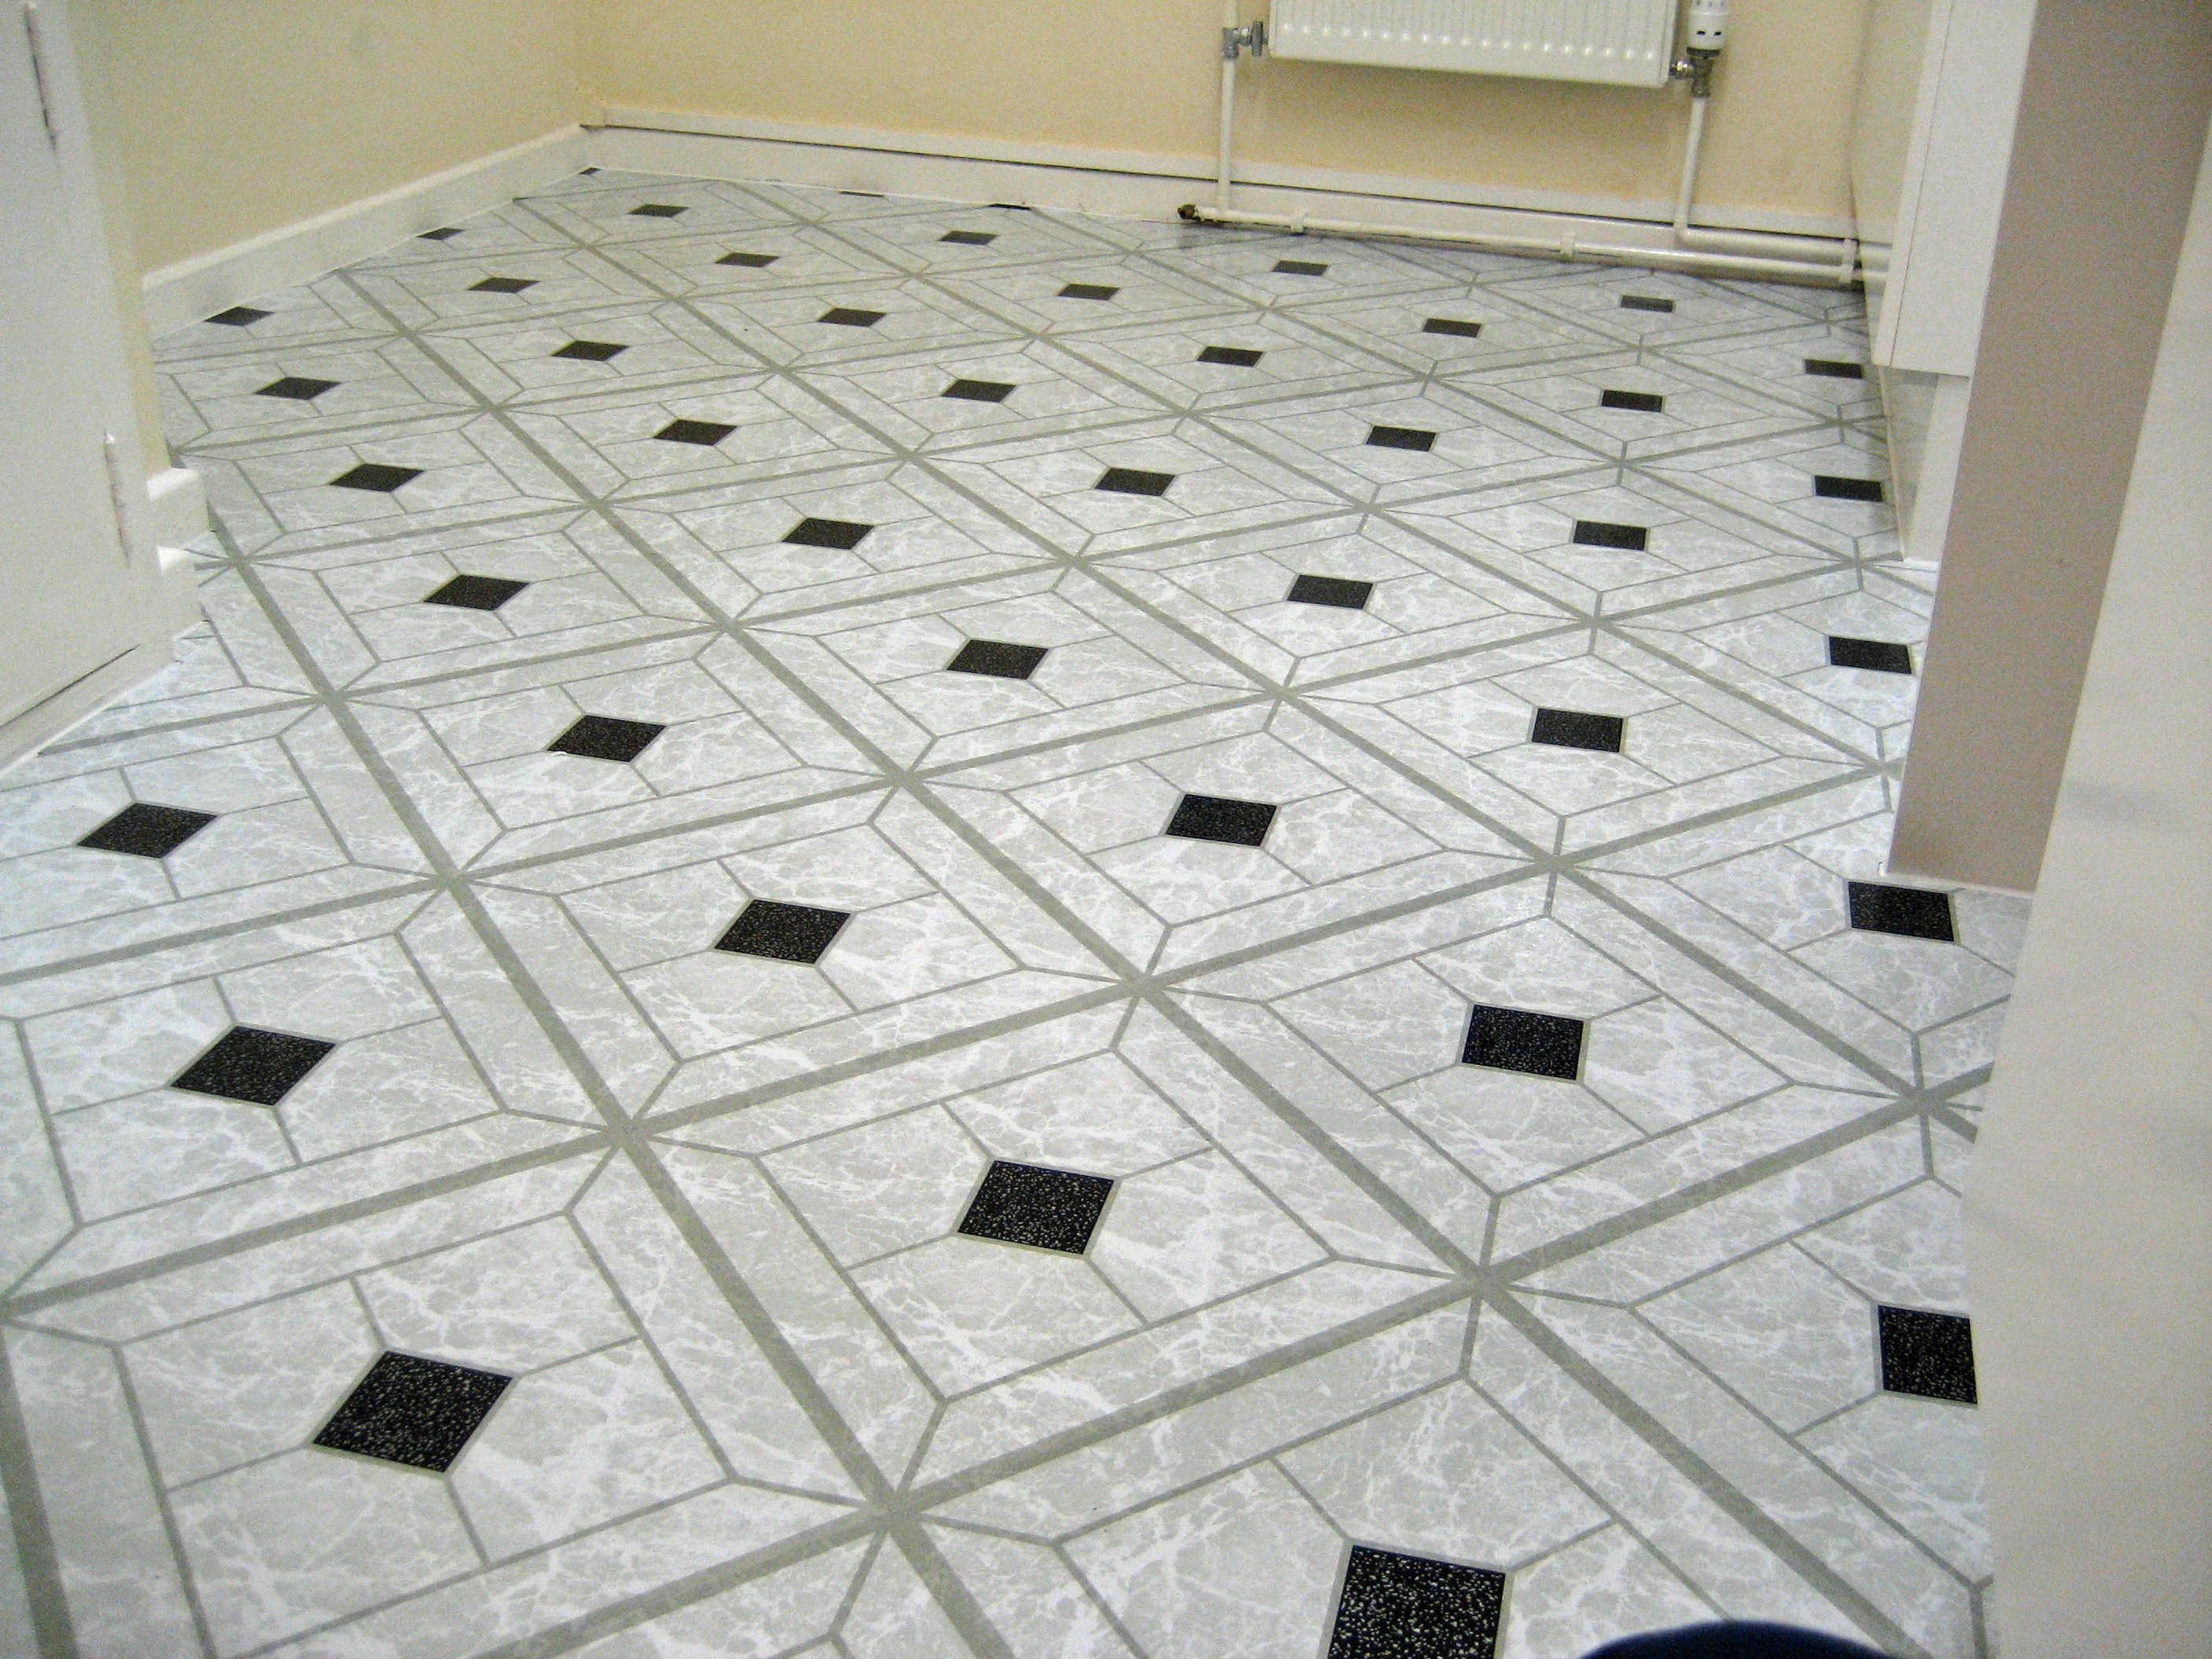 Black And White Flooring Details About 50 Vinyl Floor Tiles Diamond Self Stick